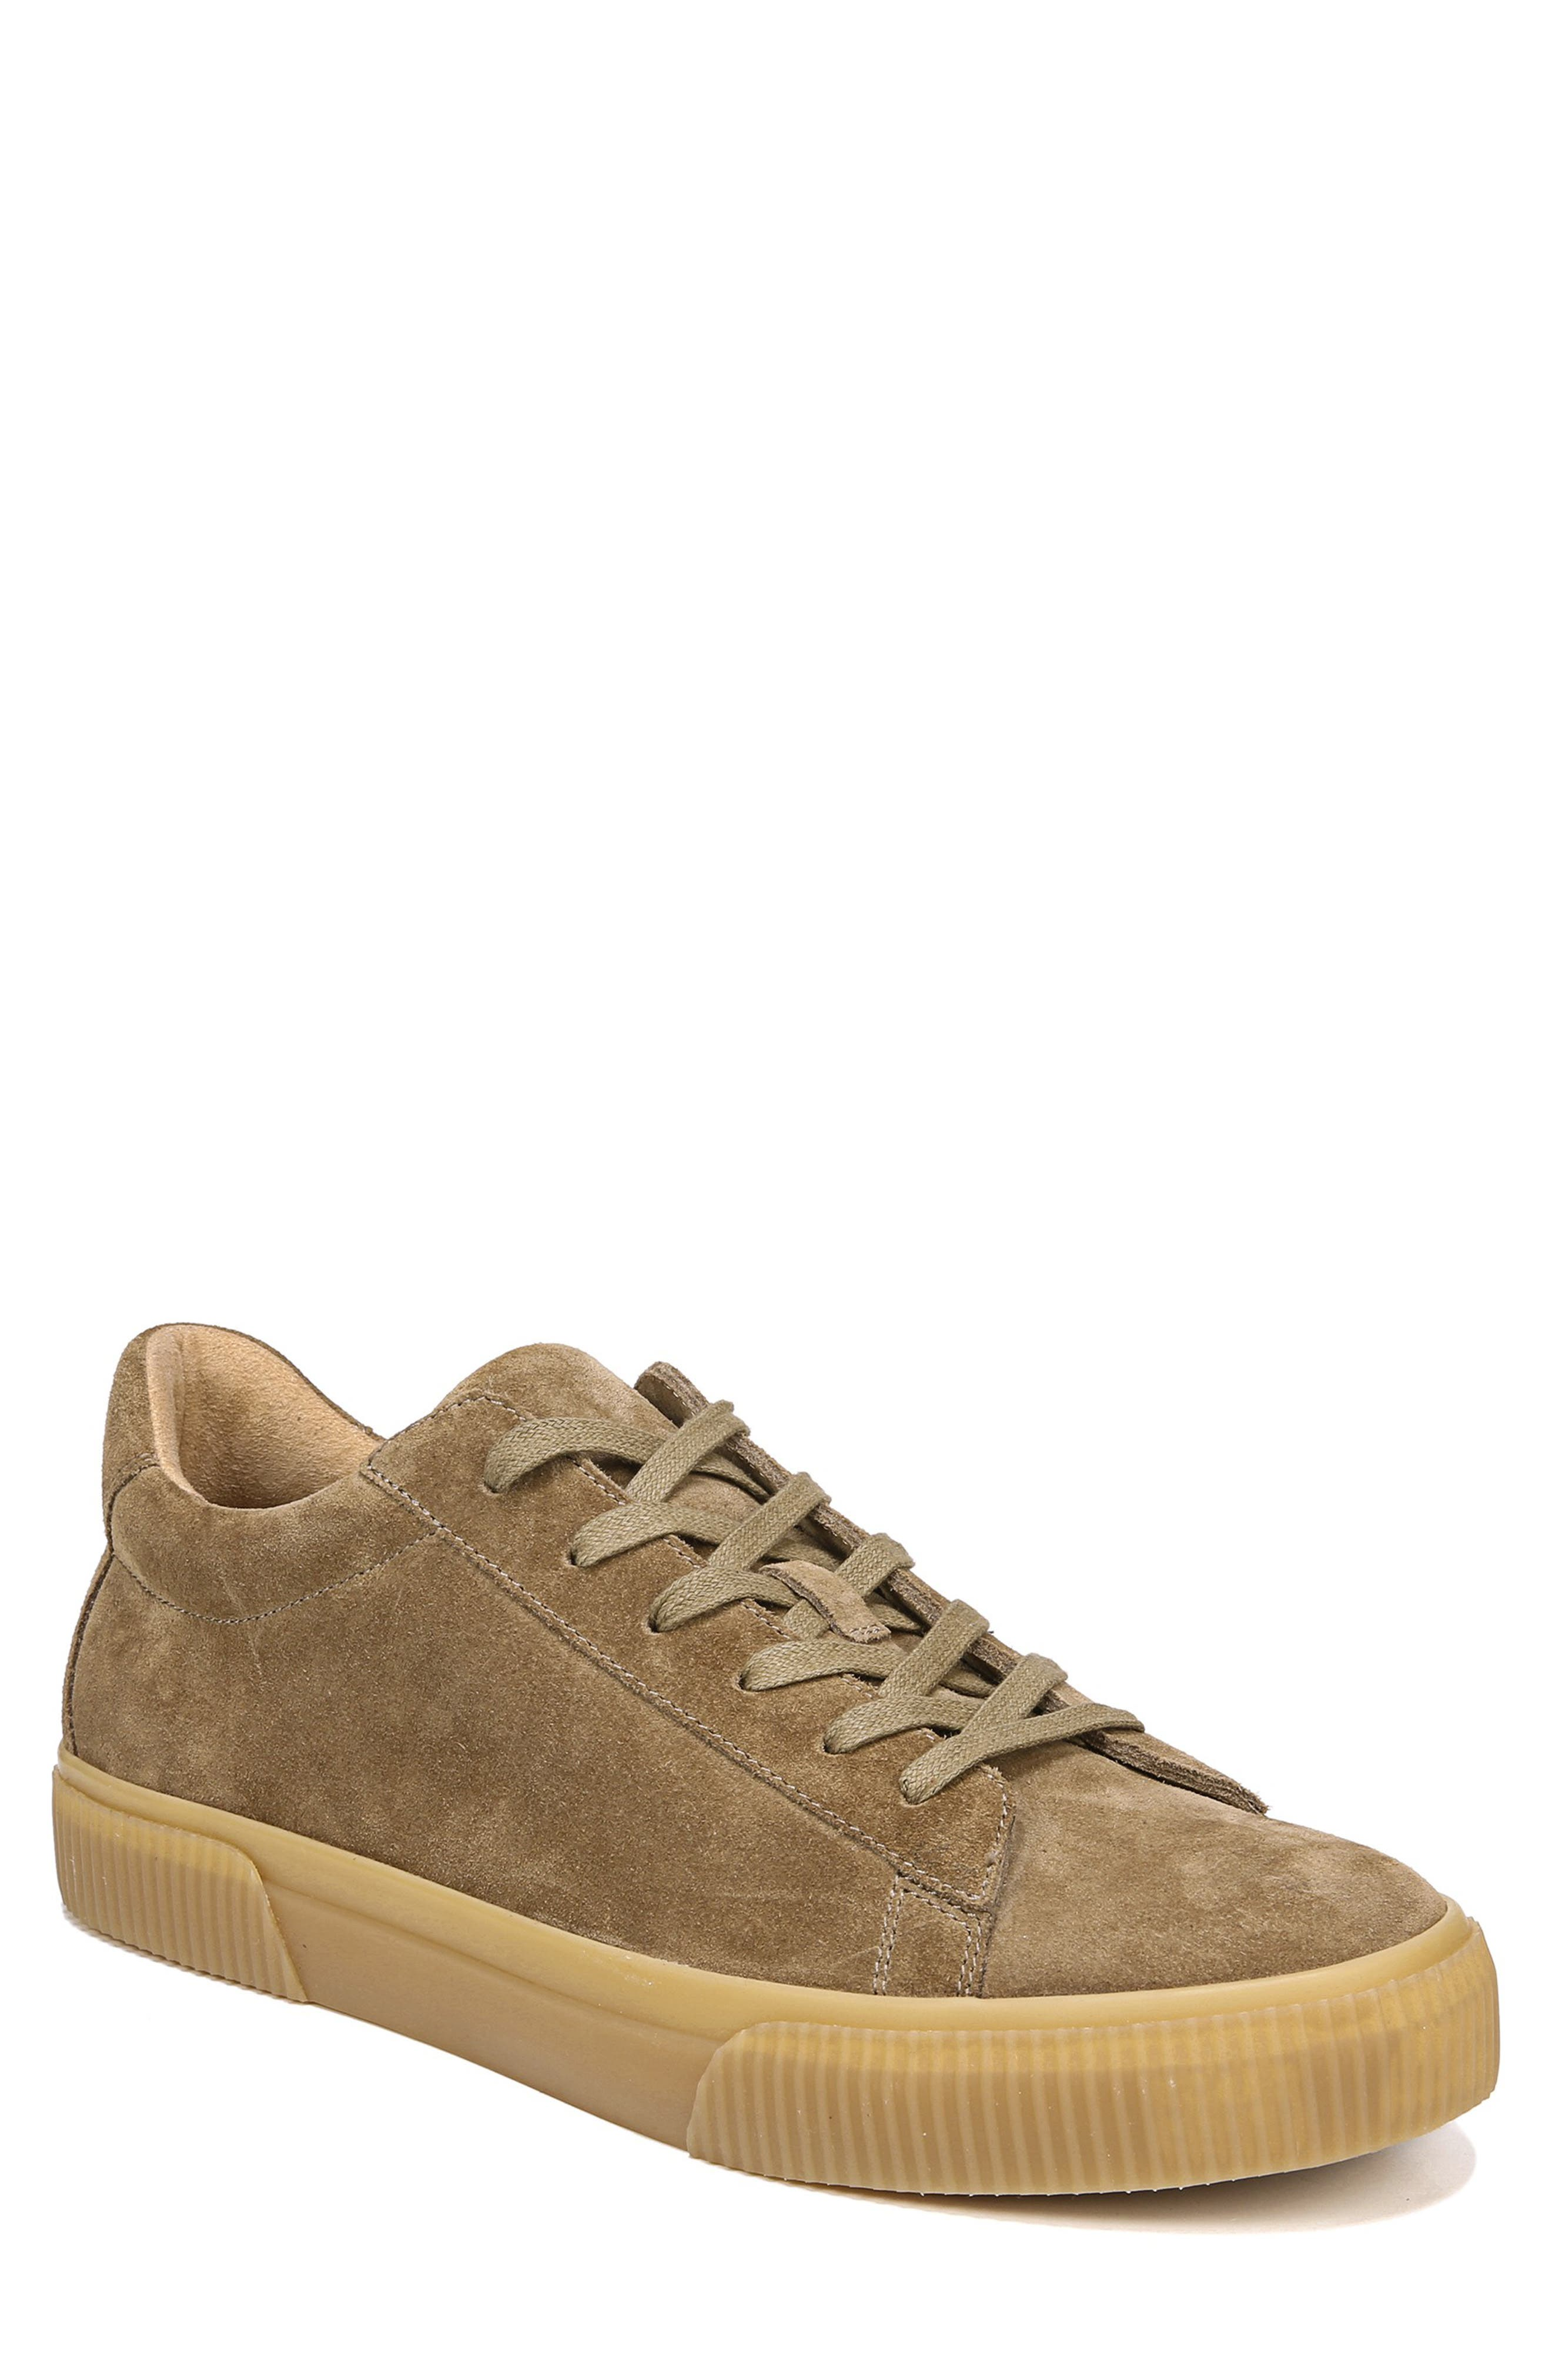 Kurtis Sneaker,                         Main,                         color, Flint